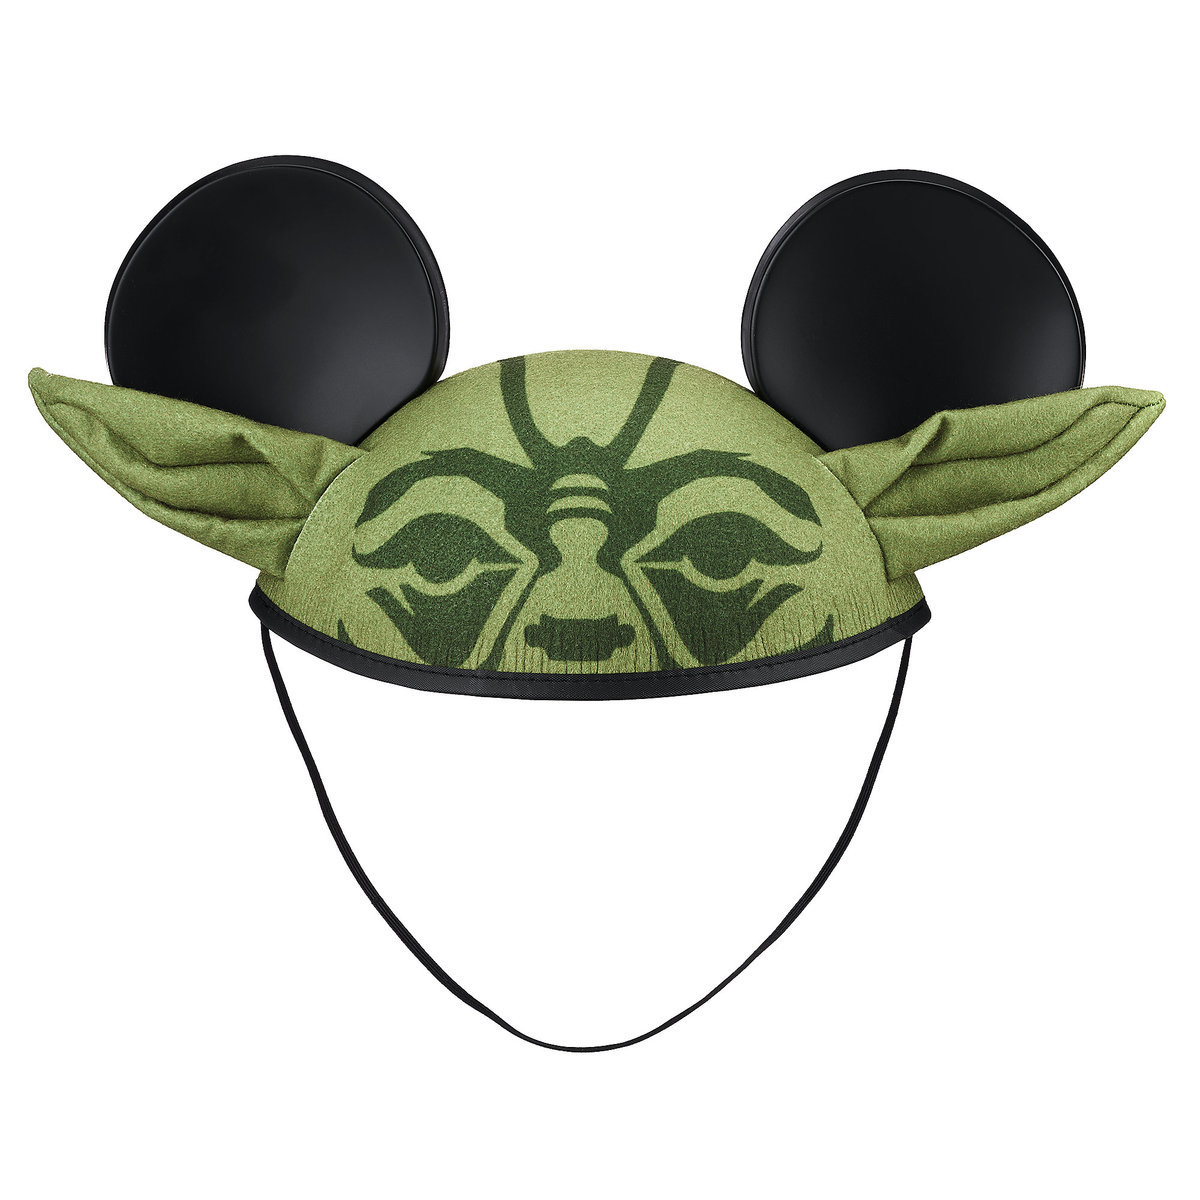 feb0ffd1ad4d4 Product Image of Yoda Ear Hat for Adults - Star Wars   1